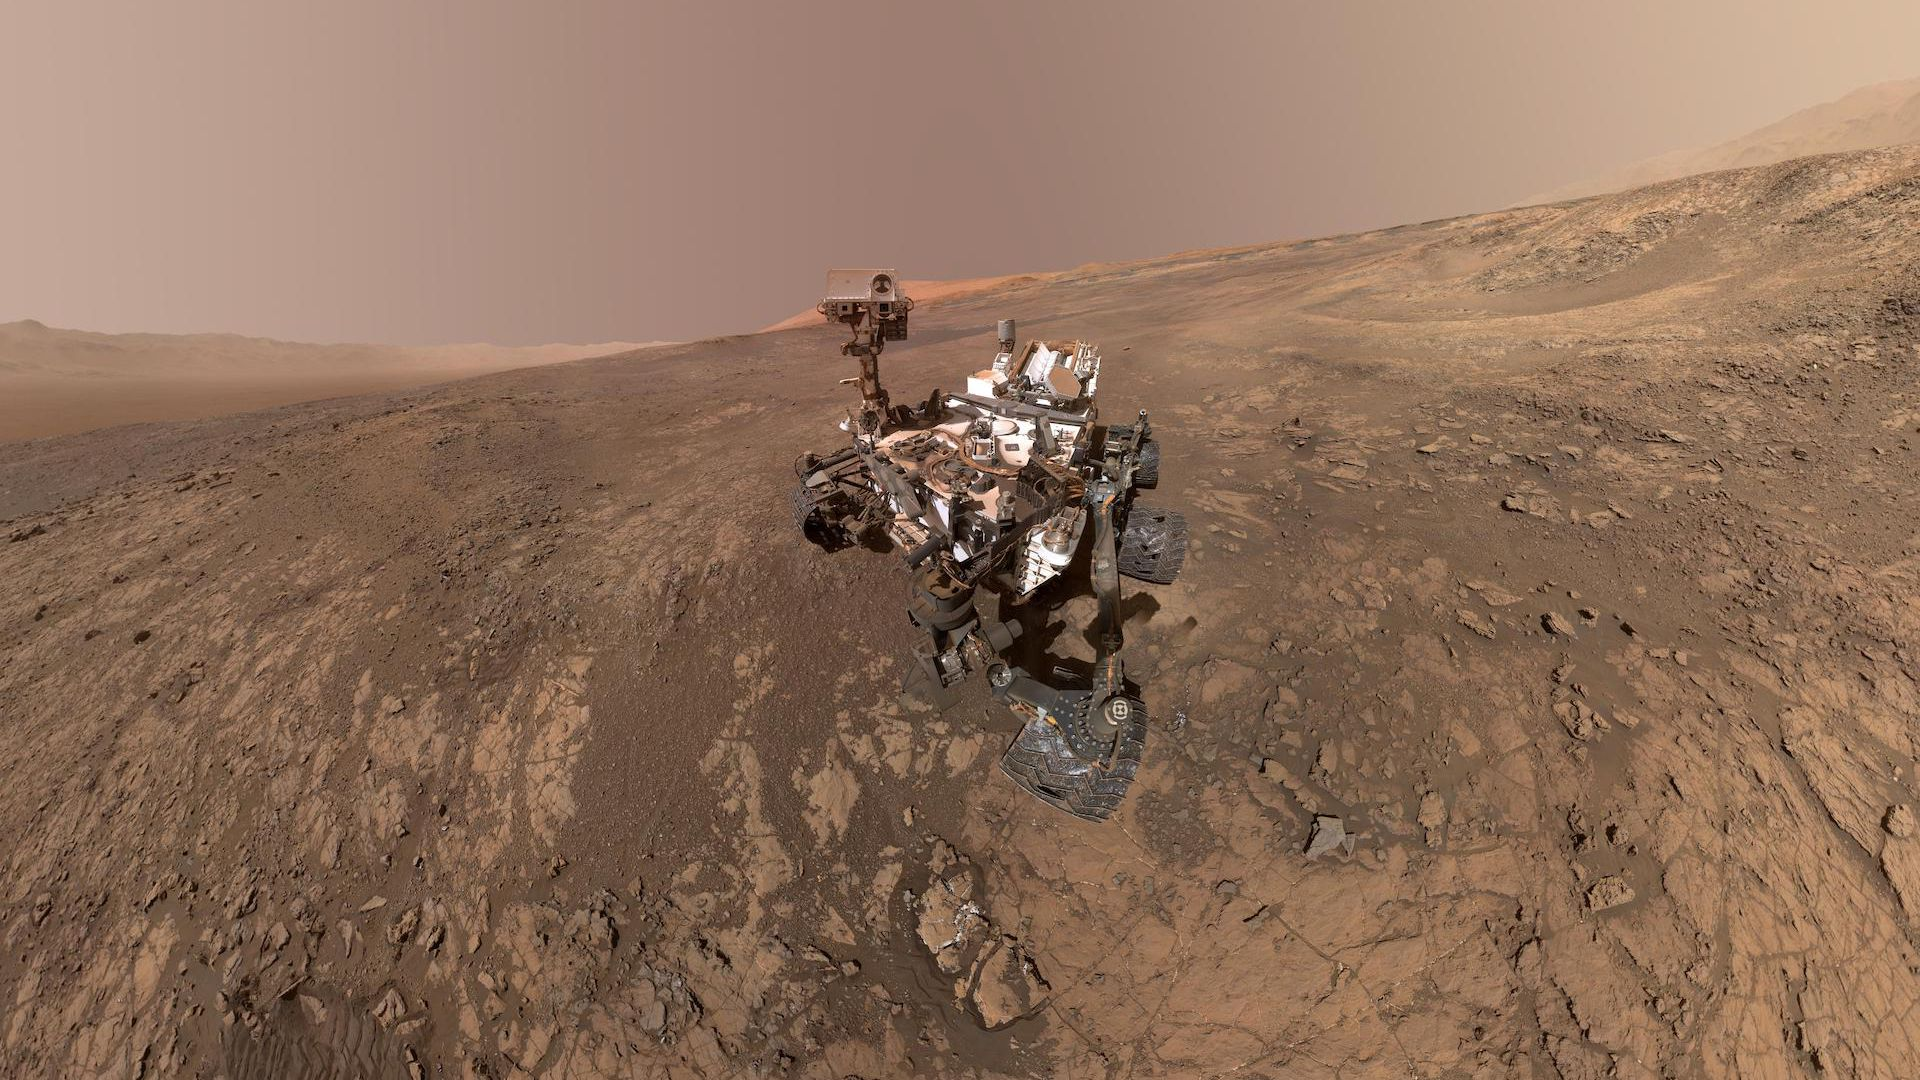 A selfie taken by the Curiosity rover on Mars